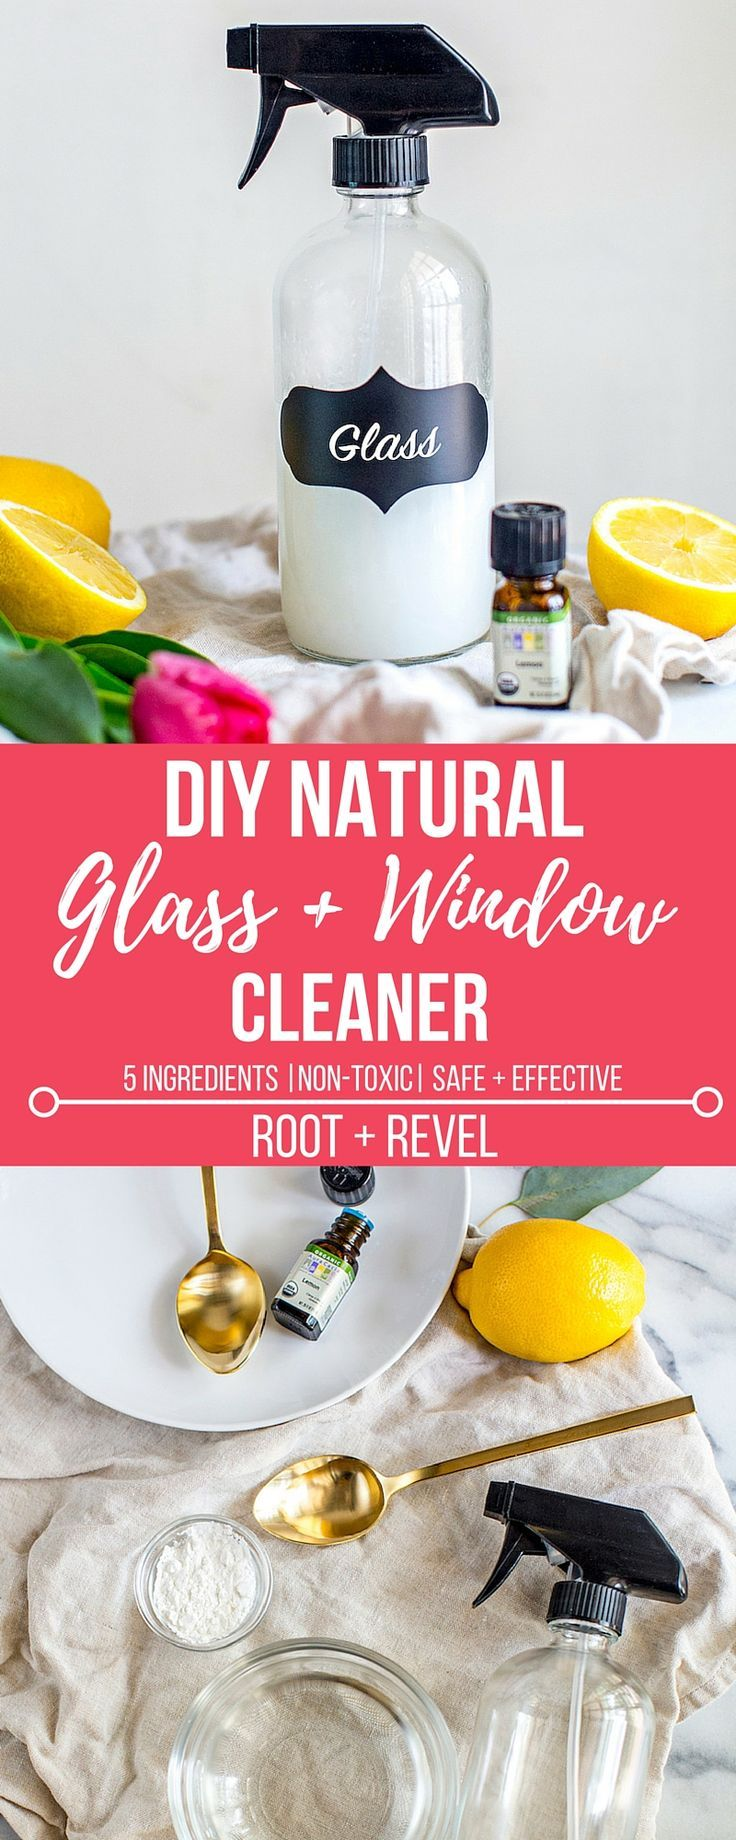 DIY Natural Glass and Window Cleaner Recipe Window